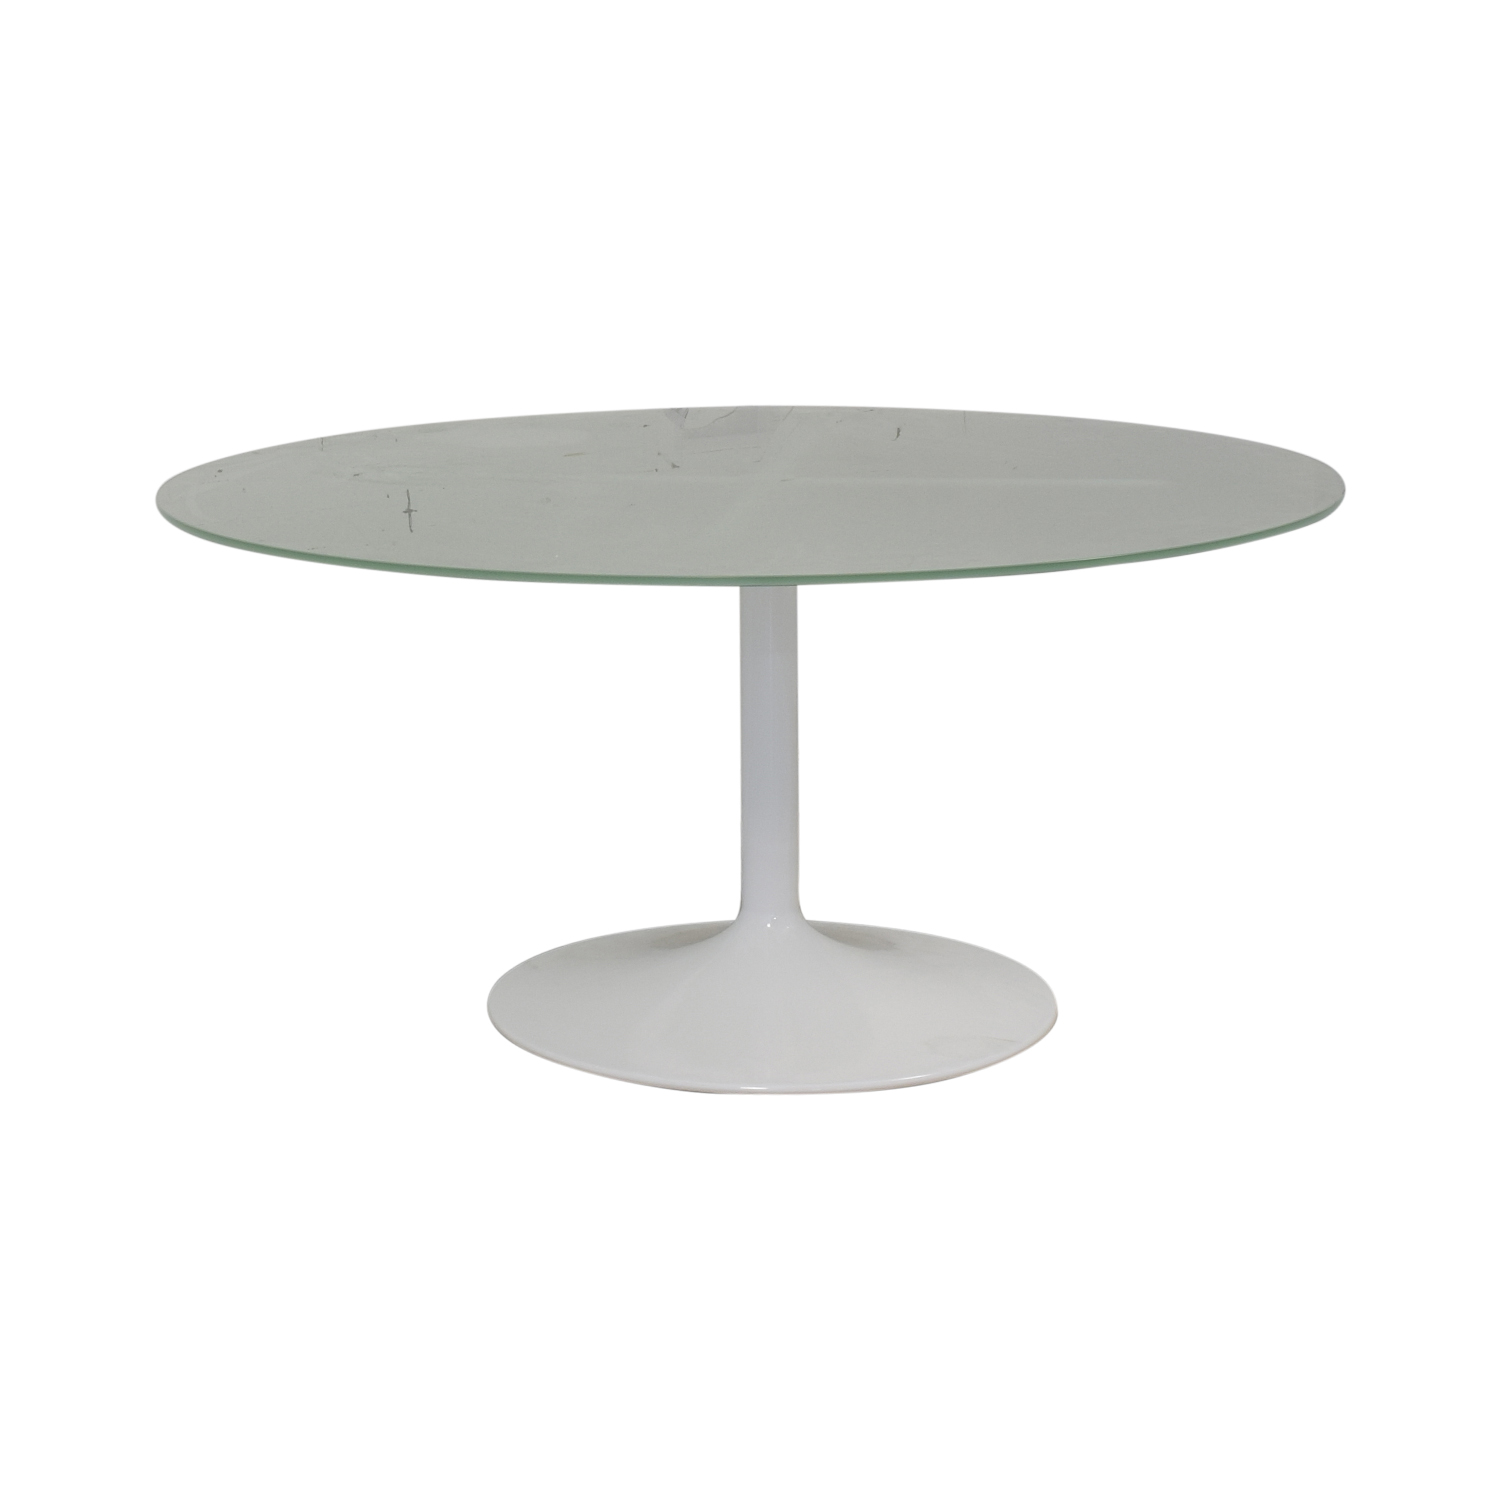 Room & Board Room & Board Aria Round Glass Dining Table Tables